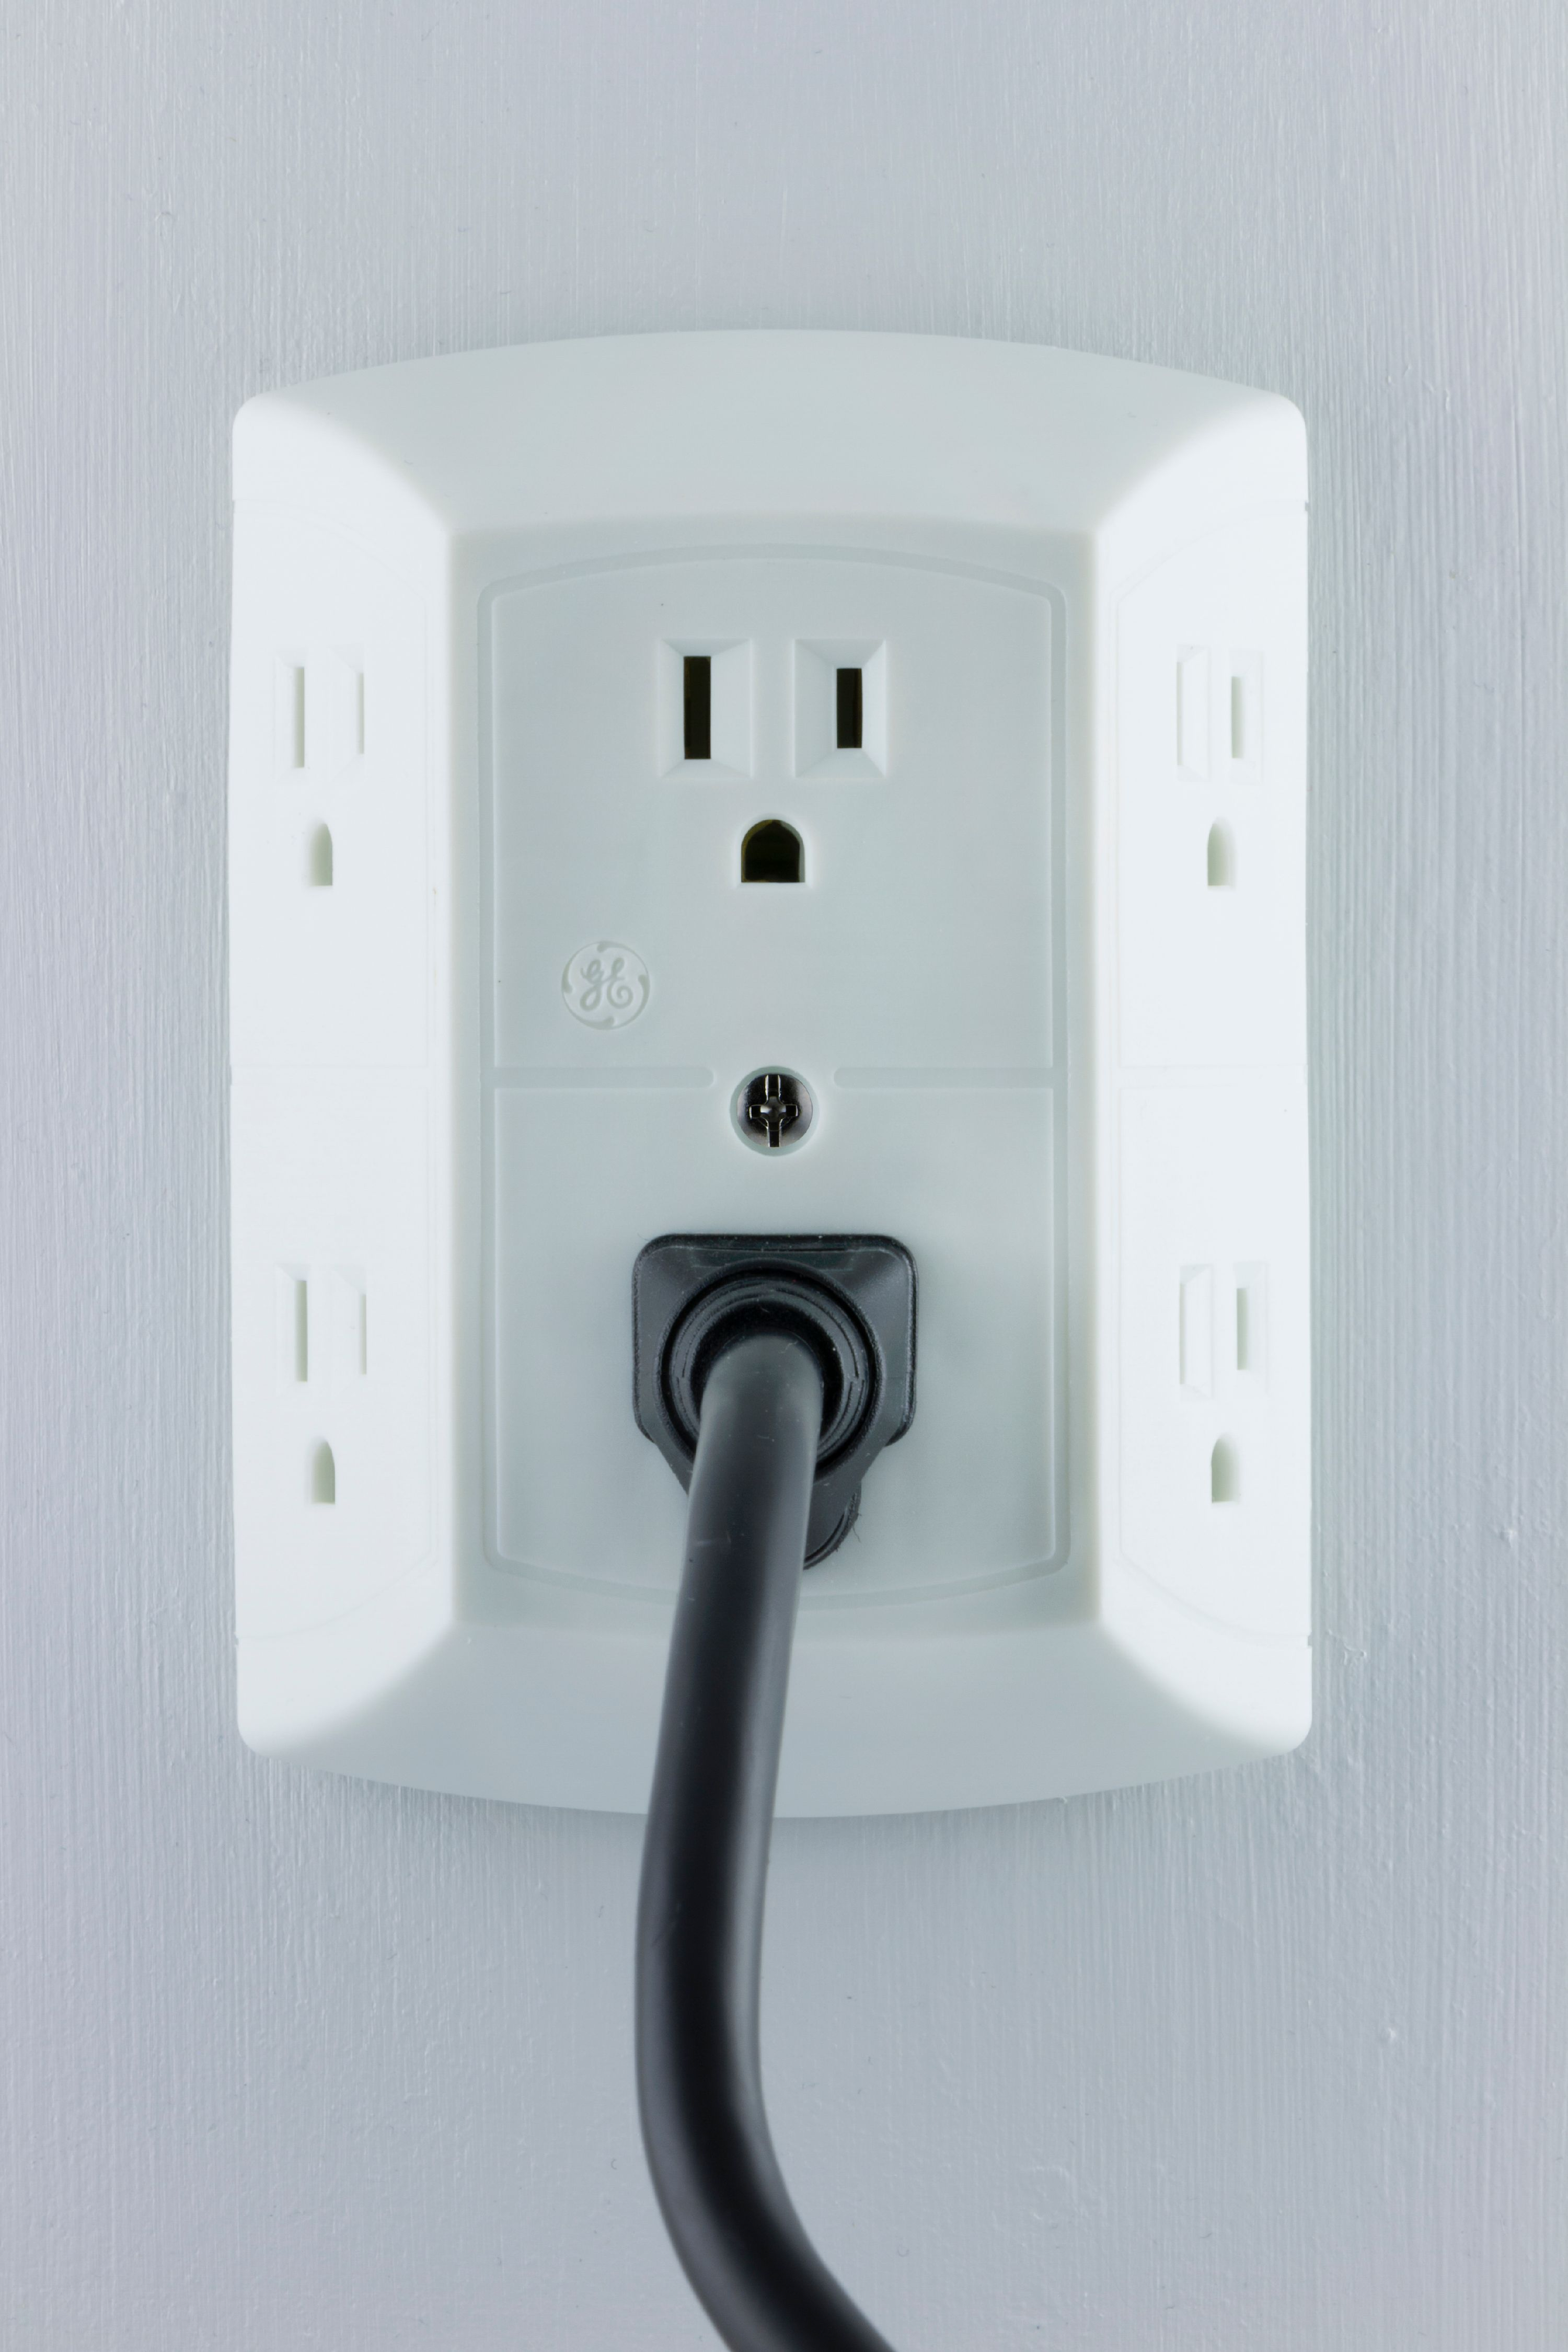 GE Grounded Adapter-Spaced 6-Outlet Tap, 50759 - Walmart.com